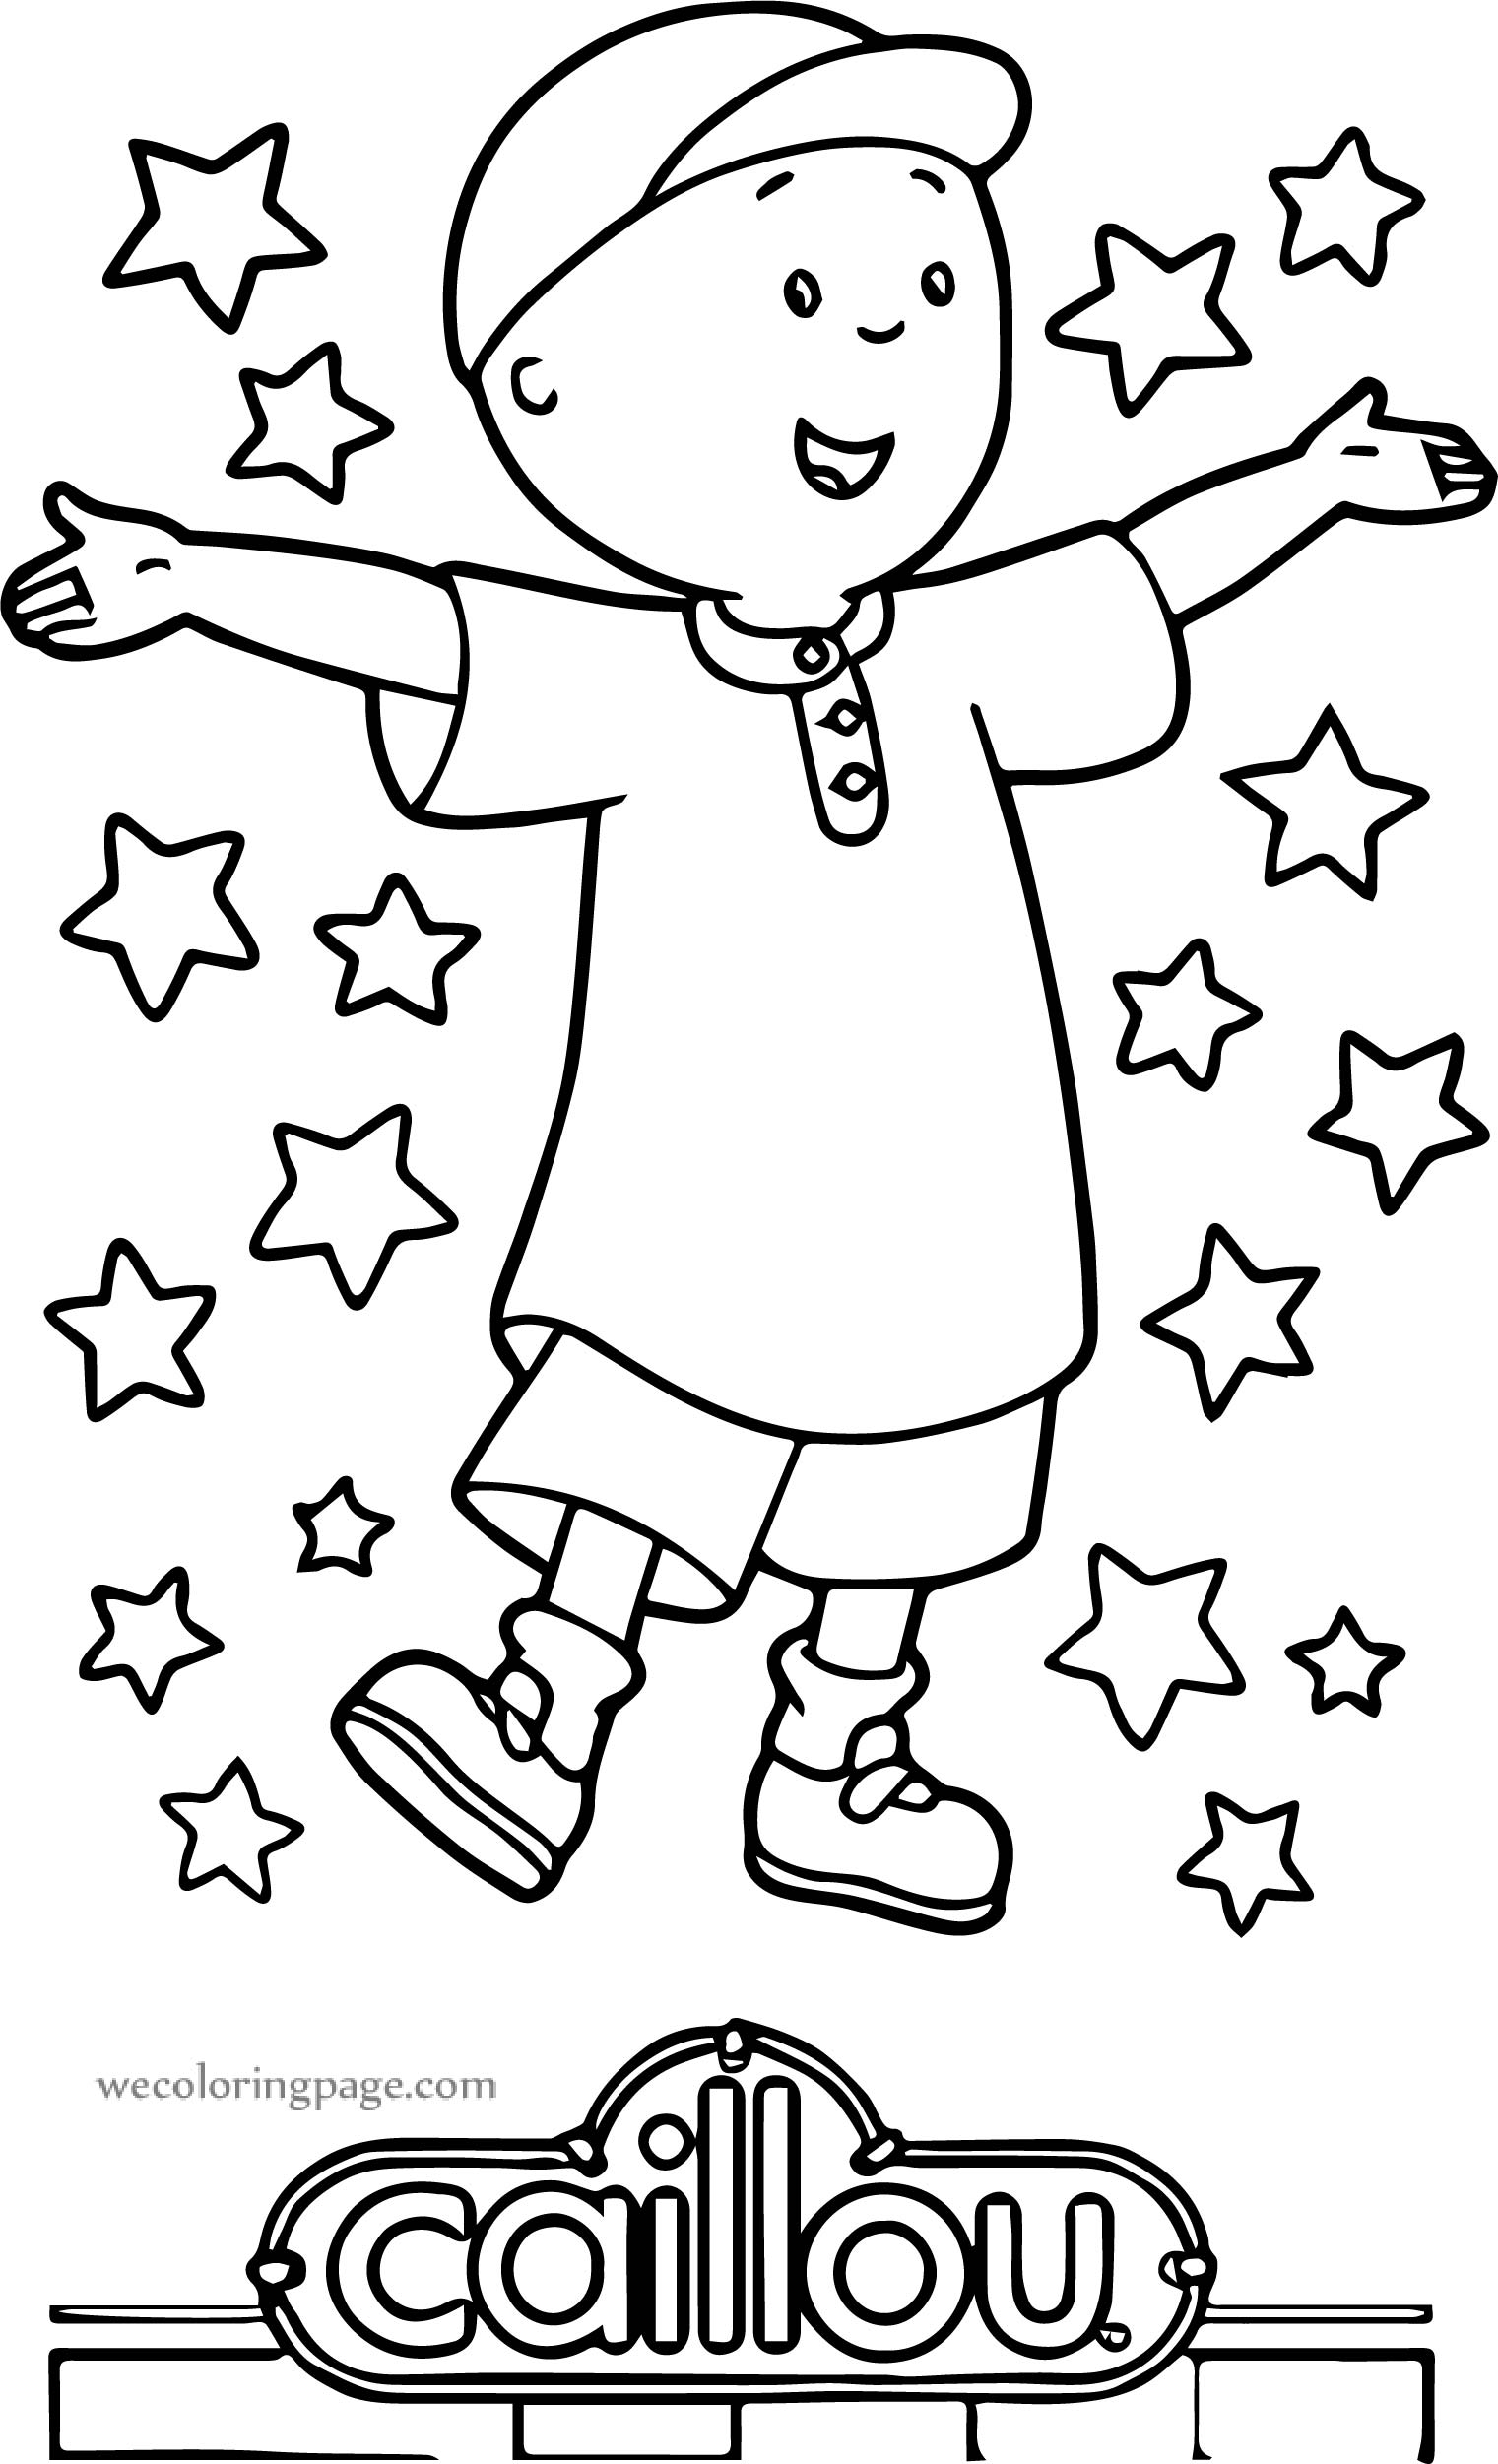 Caillou Star Sheet Printable Coloring Page